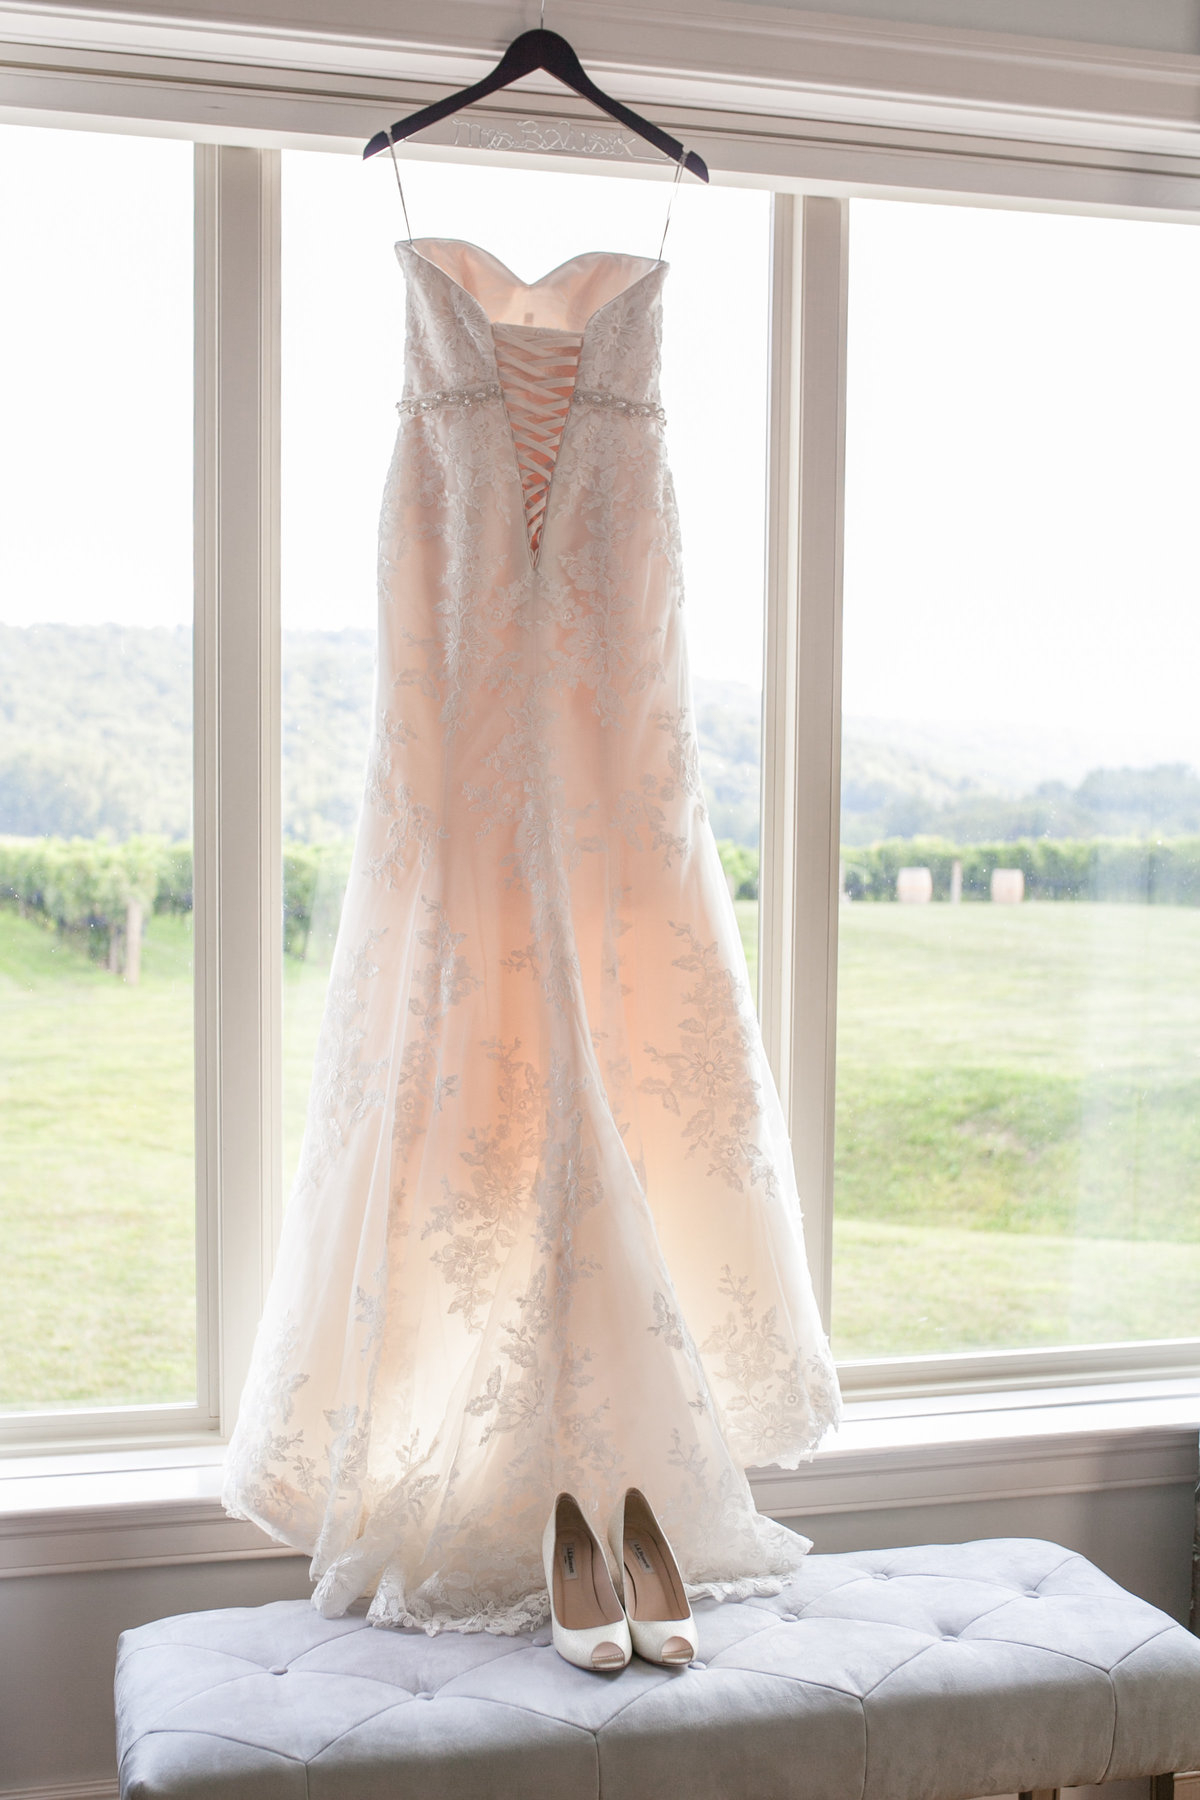 Angela-and-Scott-Wedding-BridalDetails-22